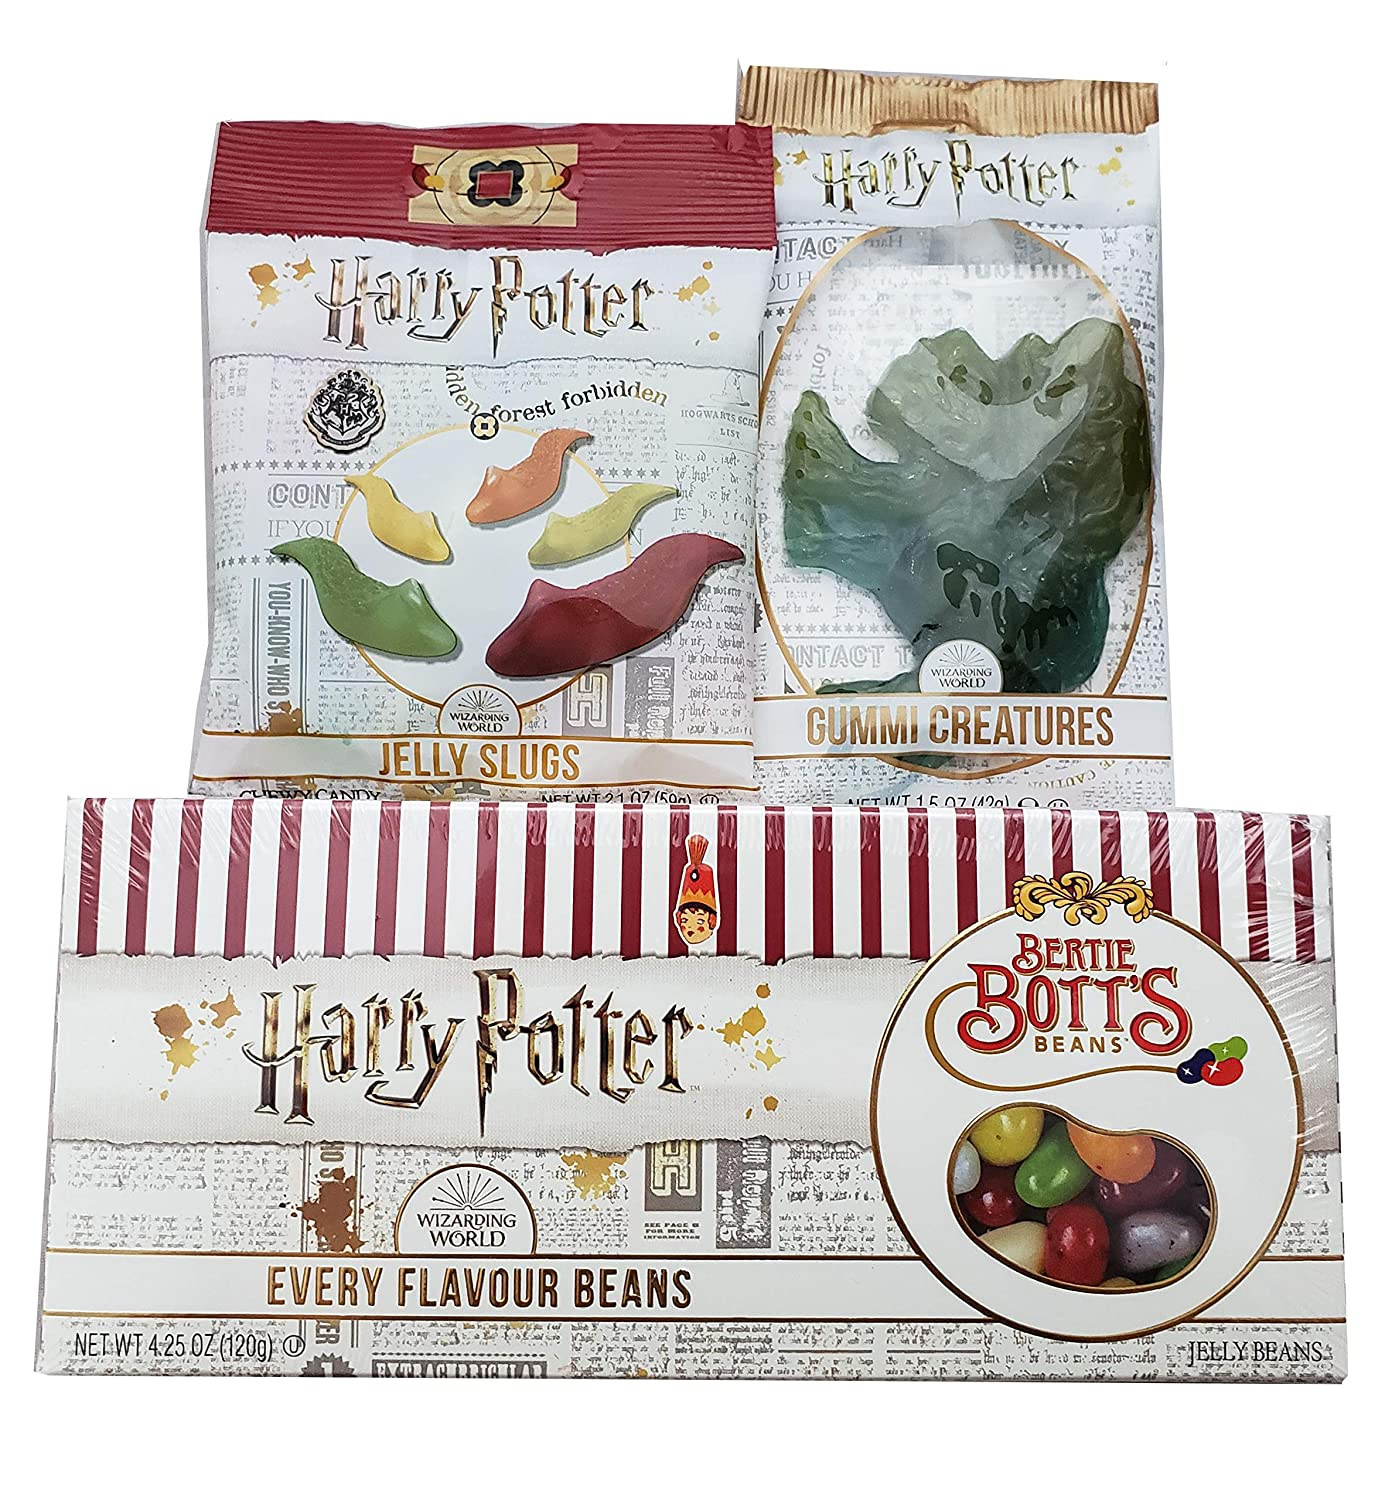 Harry Potter Bertie Bott's Every Flavour Beans Gift Box 4.25 Oz., Gummi Creature and Jelly Slugs (3 Pack)